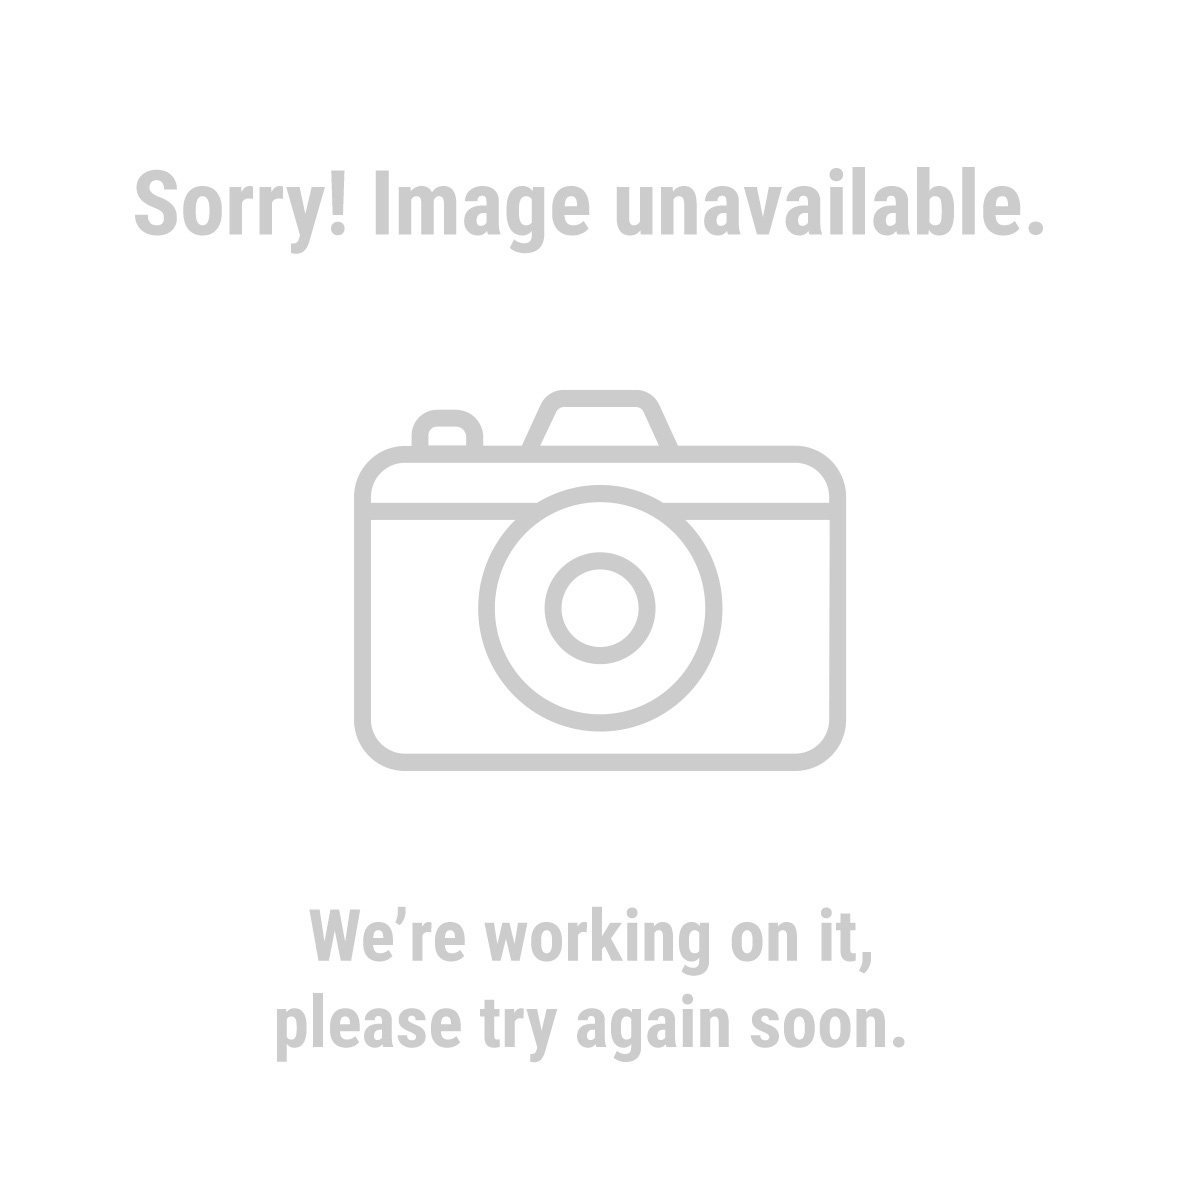 "Warrior 68034 5 Piece 6"" Metal Cutting Bi-metal Reciprocating Saw Blades"